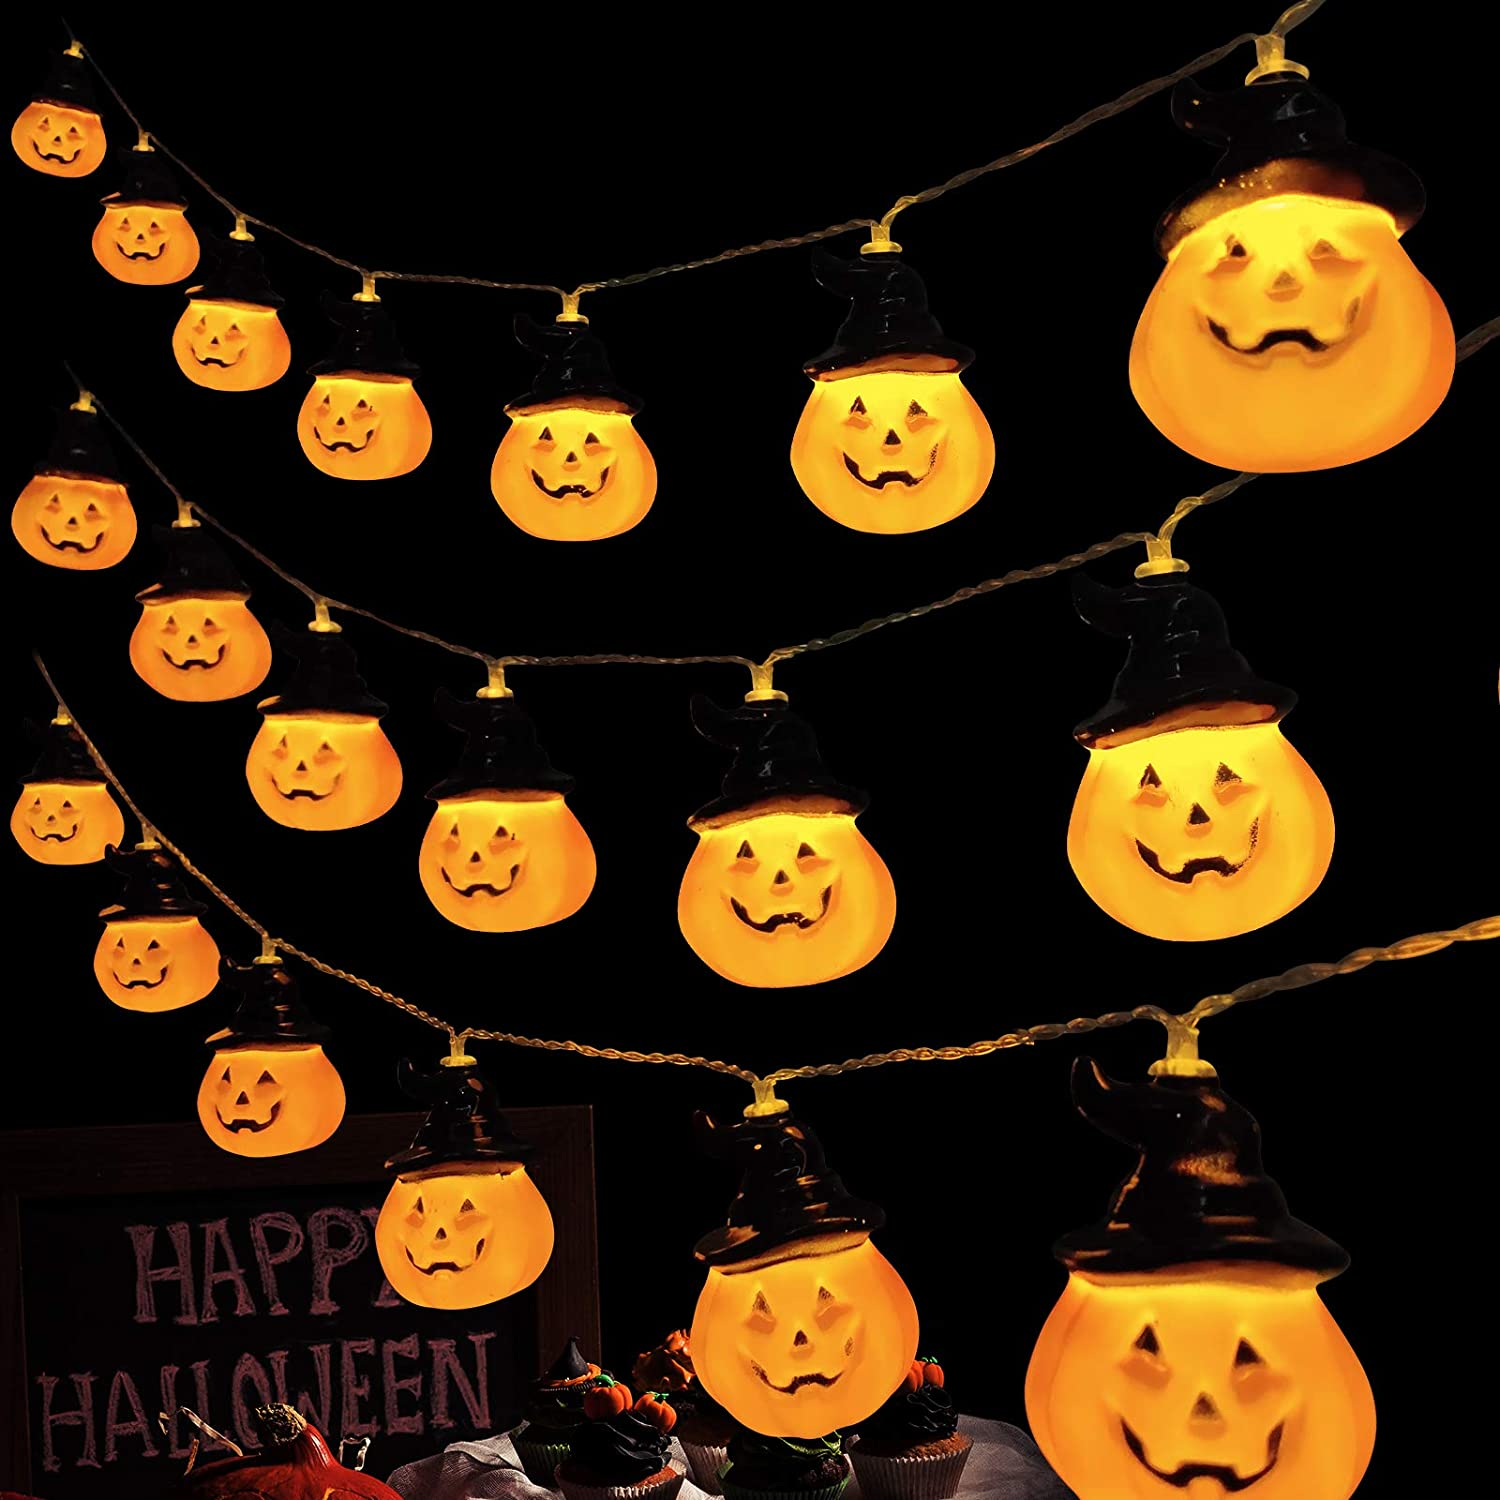 Halloween String Lights 3D Pumpkin Hat String Lights for Indoor Outdoor Halloween Decoration for Door Garden Terrace Porch Fence Terrace Hanging Pumpkin Halloween Party Decor 20 LED Pumpkin Lantern